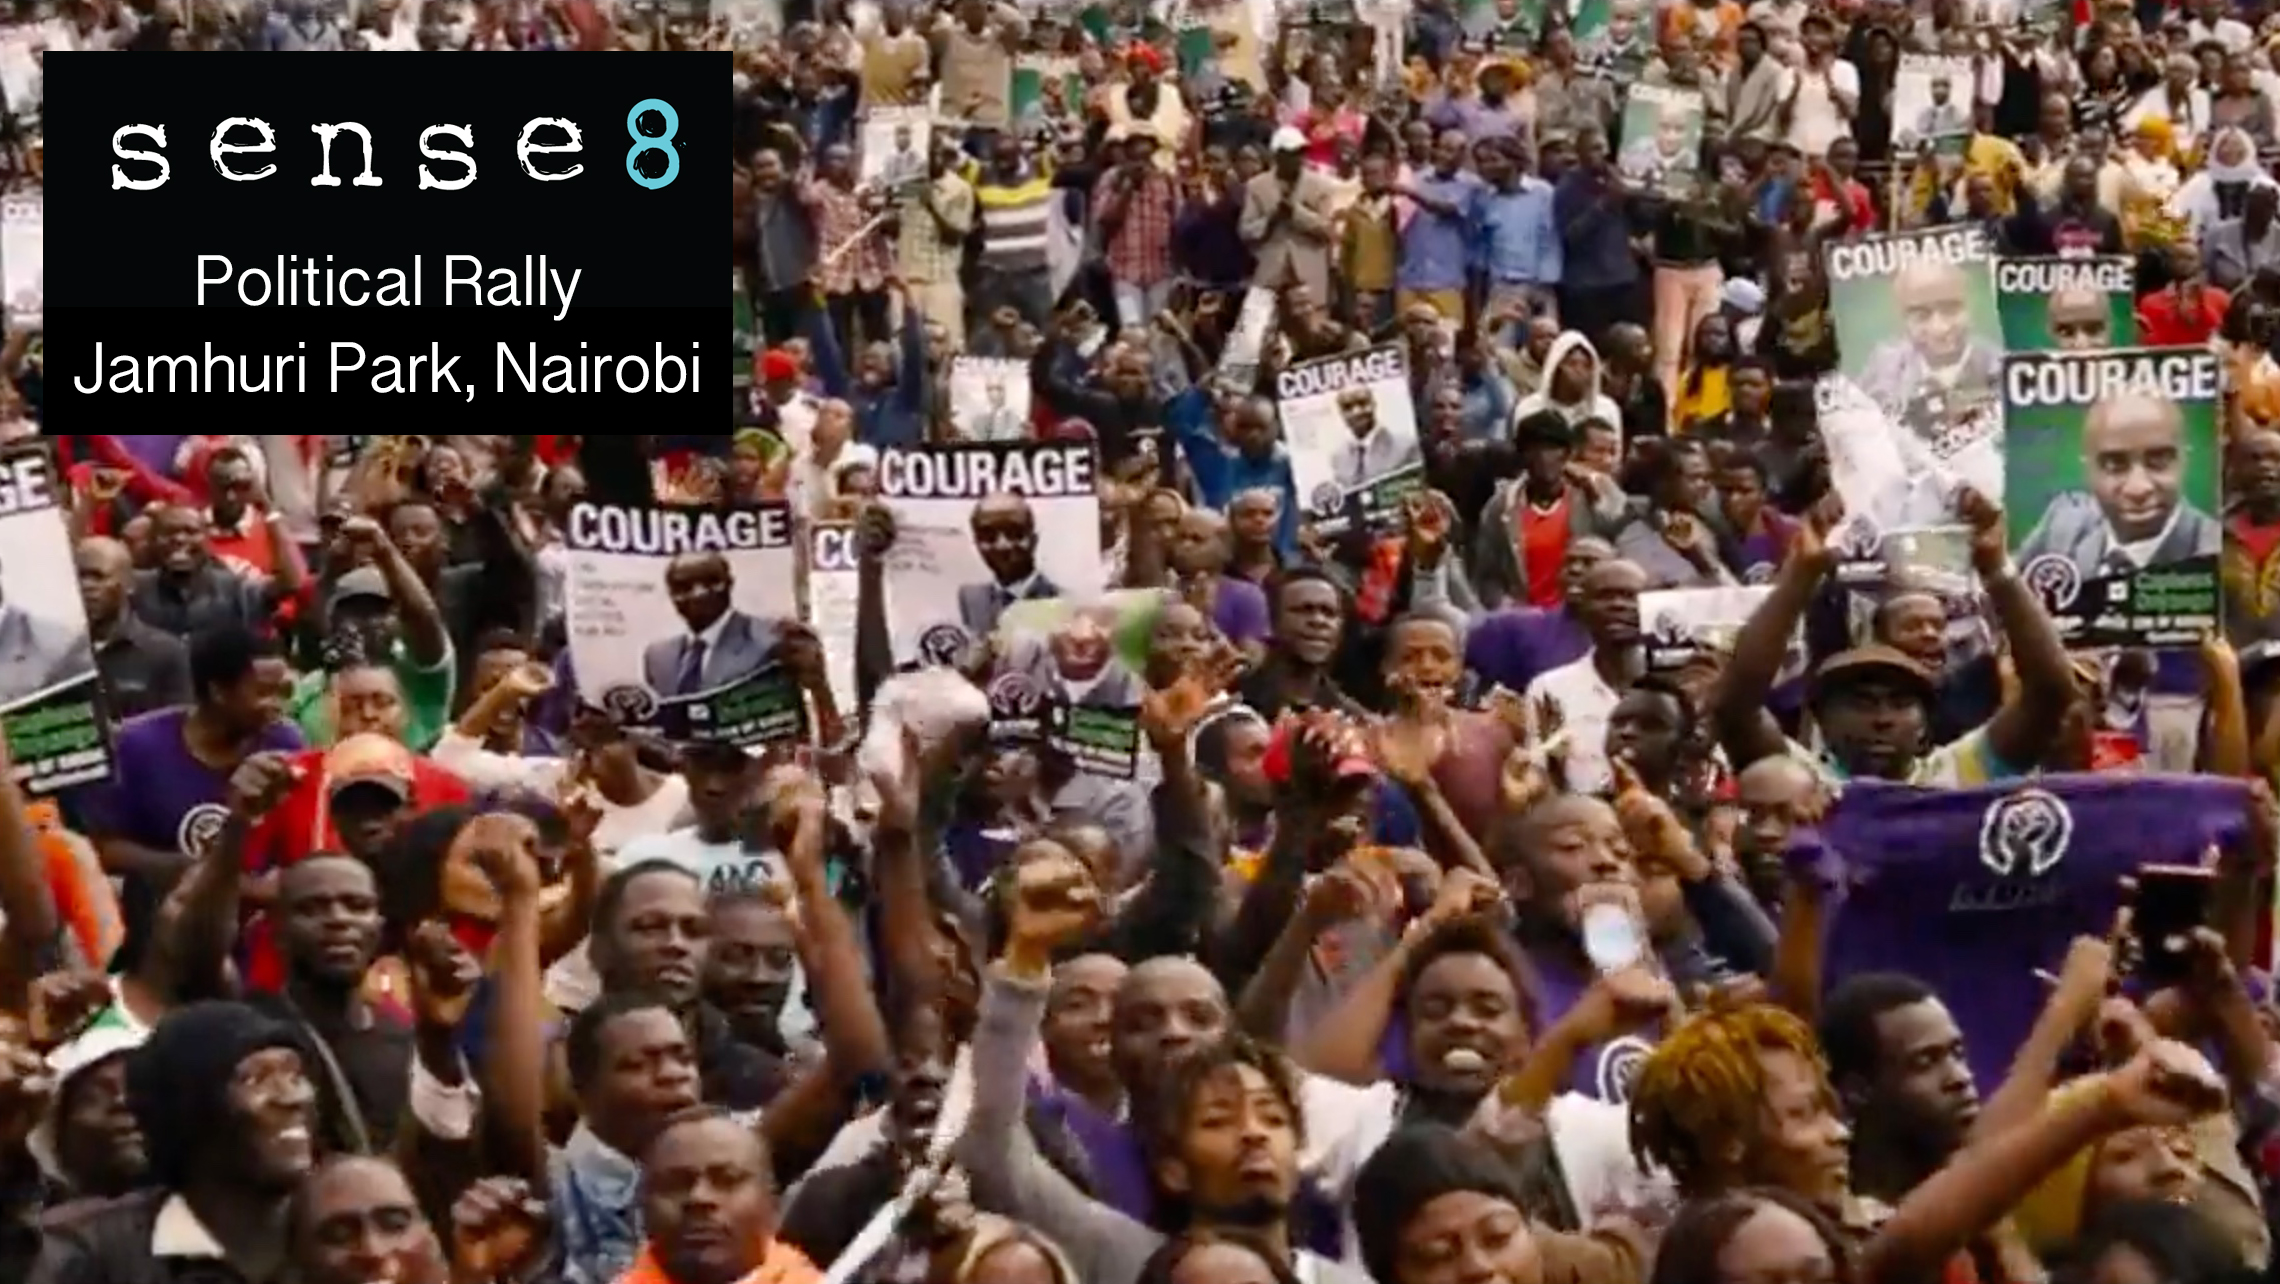 Political rally scene from Sense8